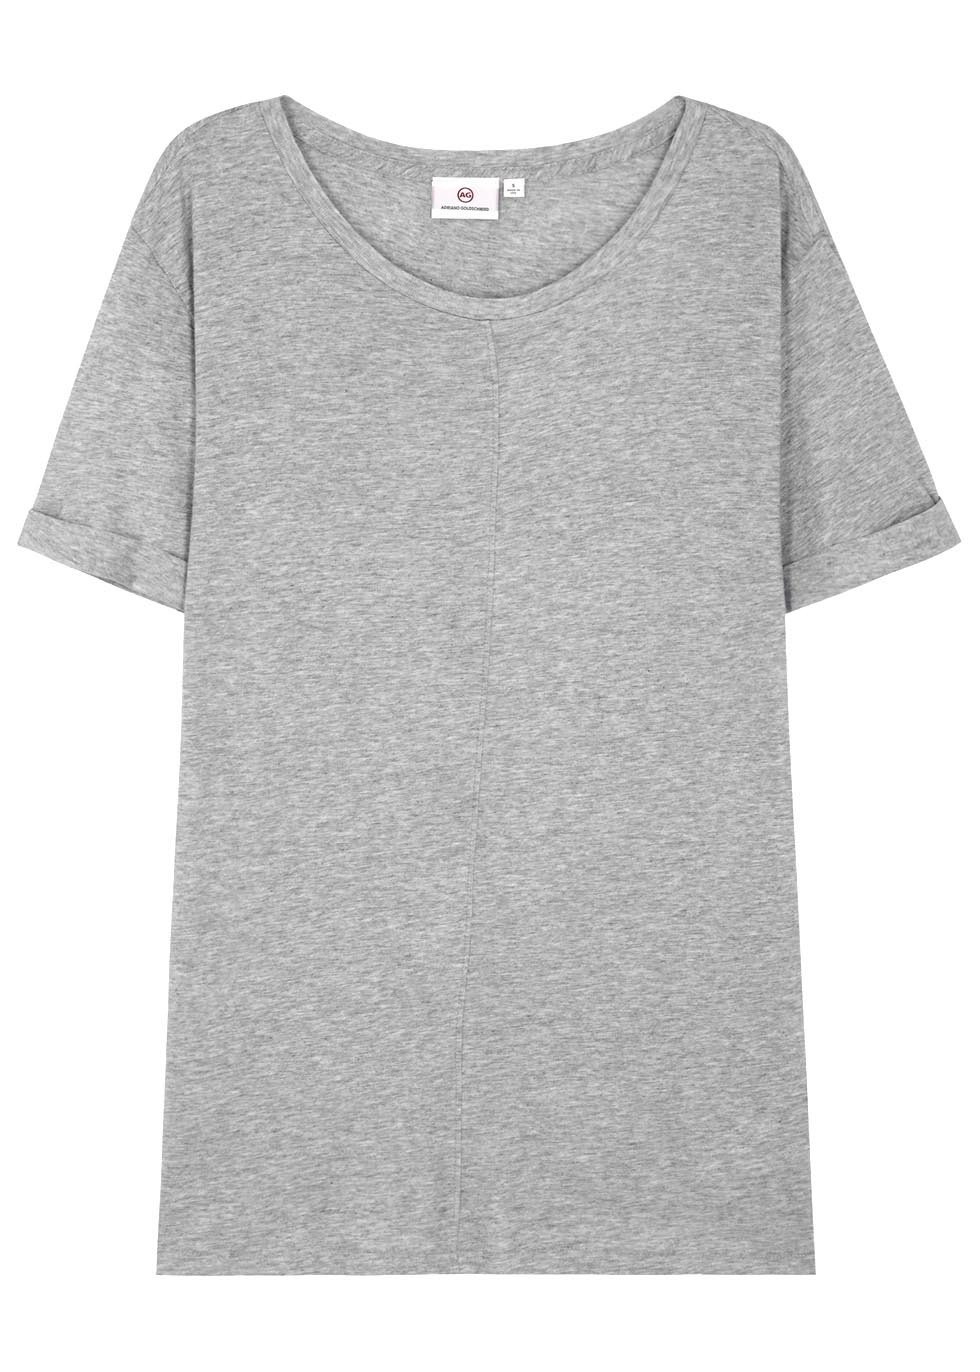 The Raw Grove Grey Jersey T Shirt - neckline: round neck; pattern: plain; style: t-shirt; predominant colour: light grey; occasions: casual; length: standard; fibres: cotton - mix; fit: body skimming; sleeve length: short sleeve; sleeve style: standard; pattern type: fabric; texture group: jersey - stretchy/drapey; season: s/s 2016